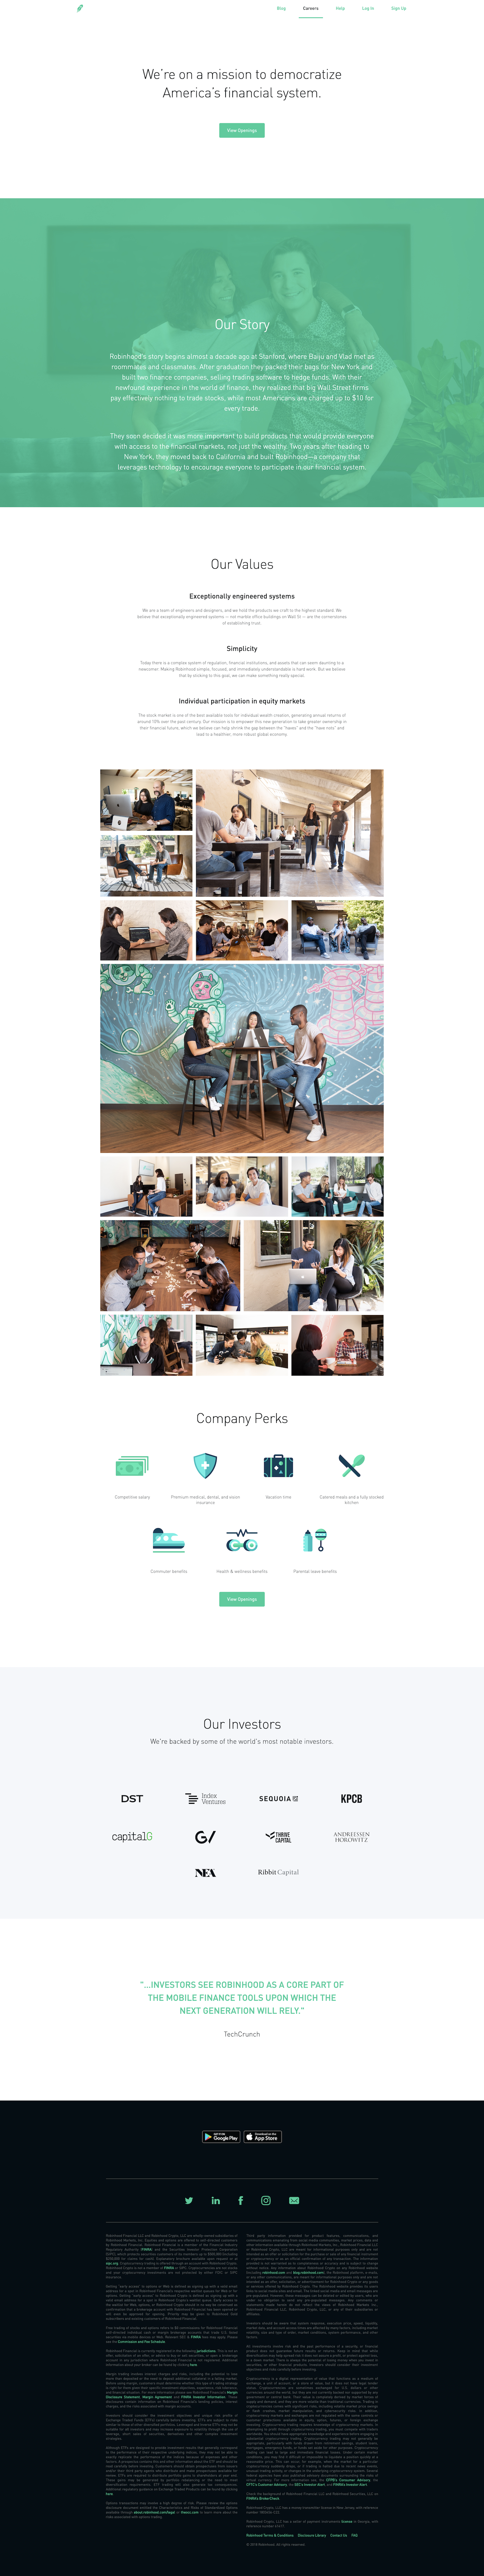 Screenshot of the Careers - Main page from the Robinhood website.